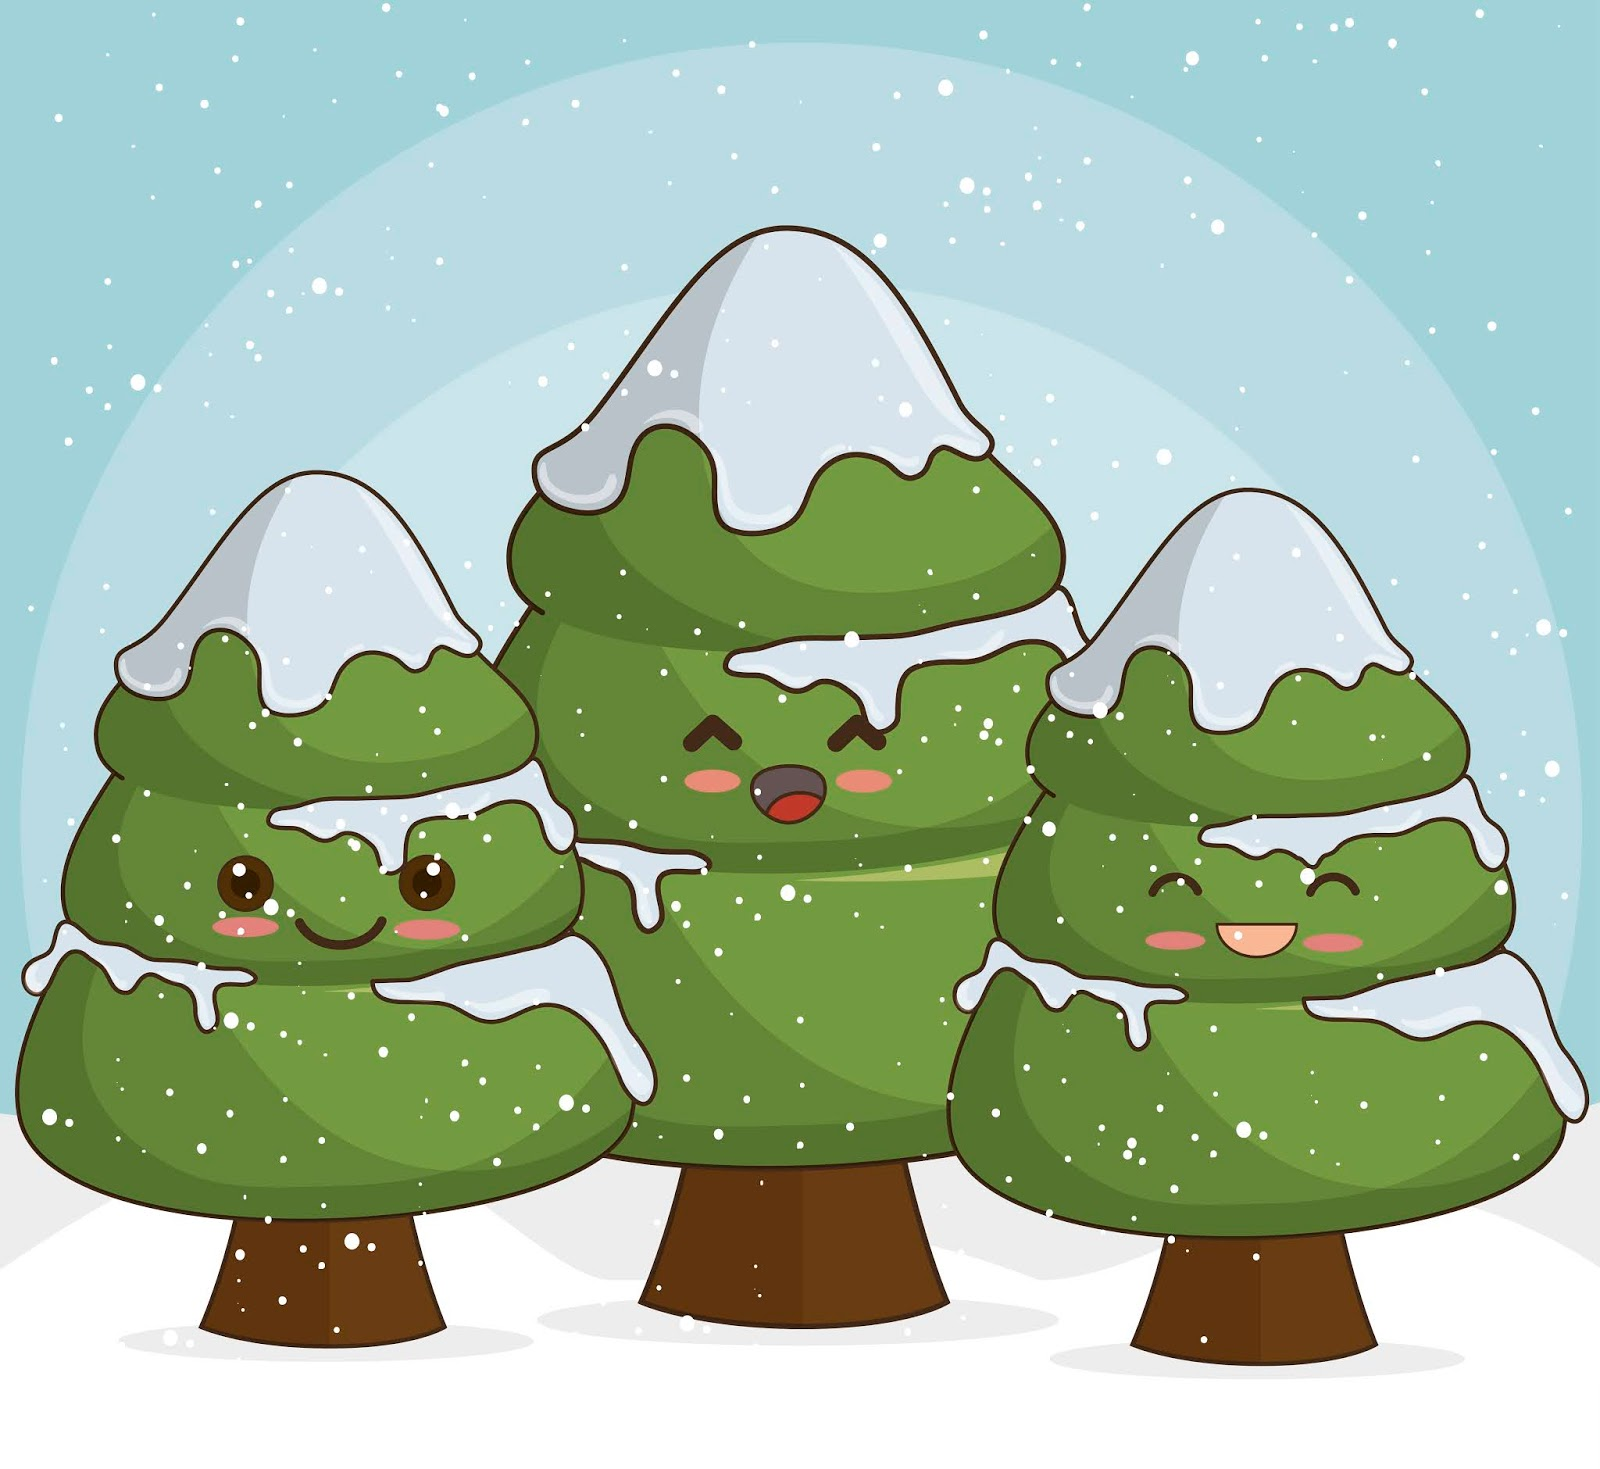 Snowy Christmas Trees Snow Free Download Vector CDR, AI, EPS and PNG Formats